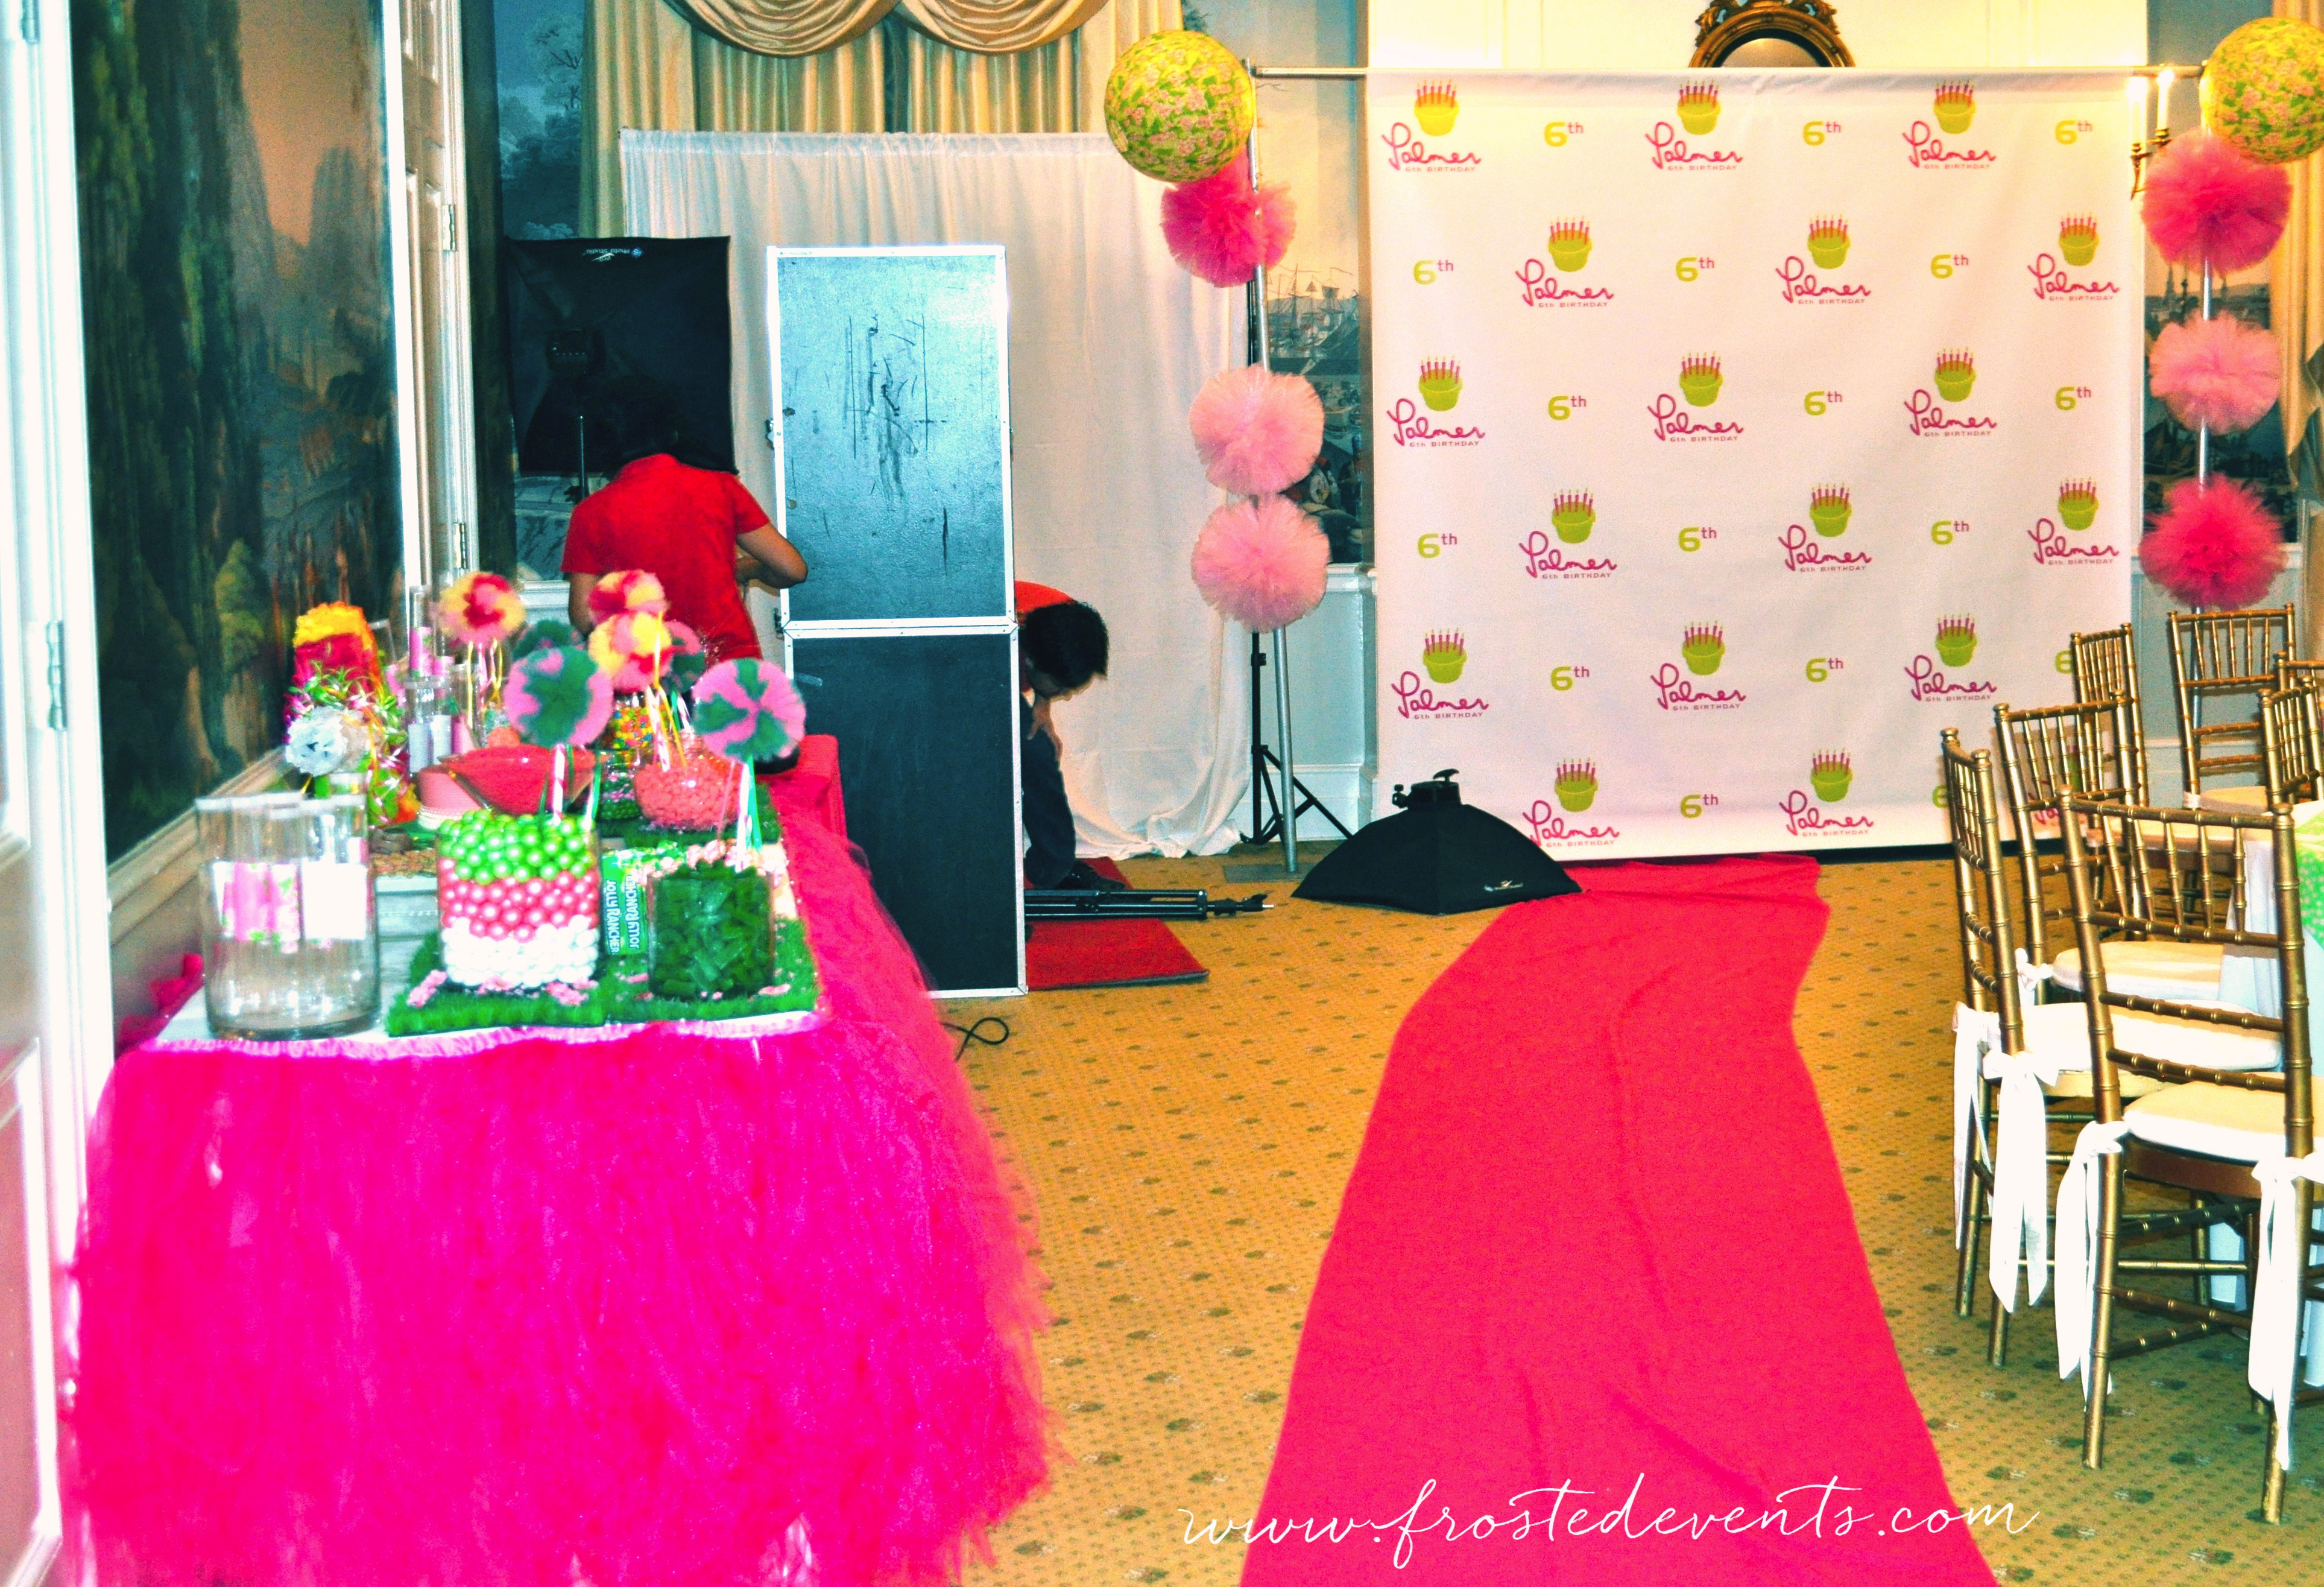 Pink Carpet and Backdrop- Lilly Pulitzer Theme Birthday Party by Frosted Events www.frostedevents.com